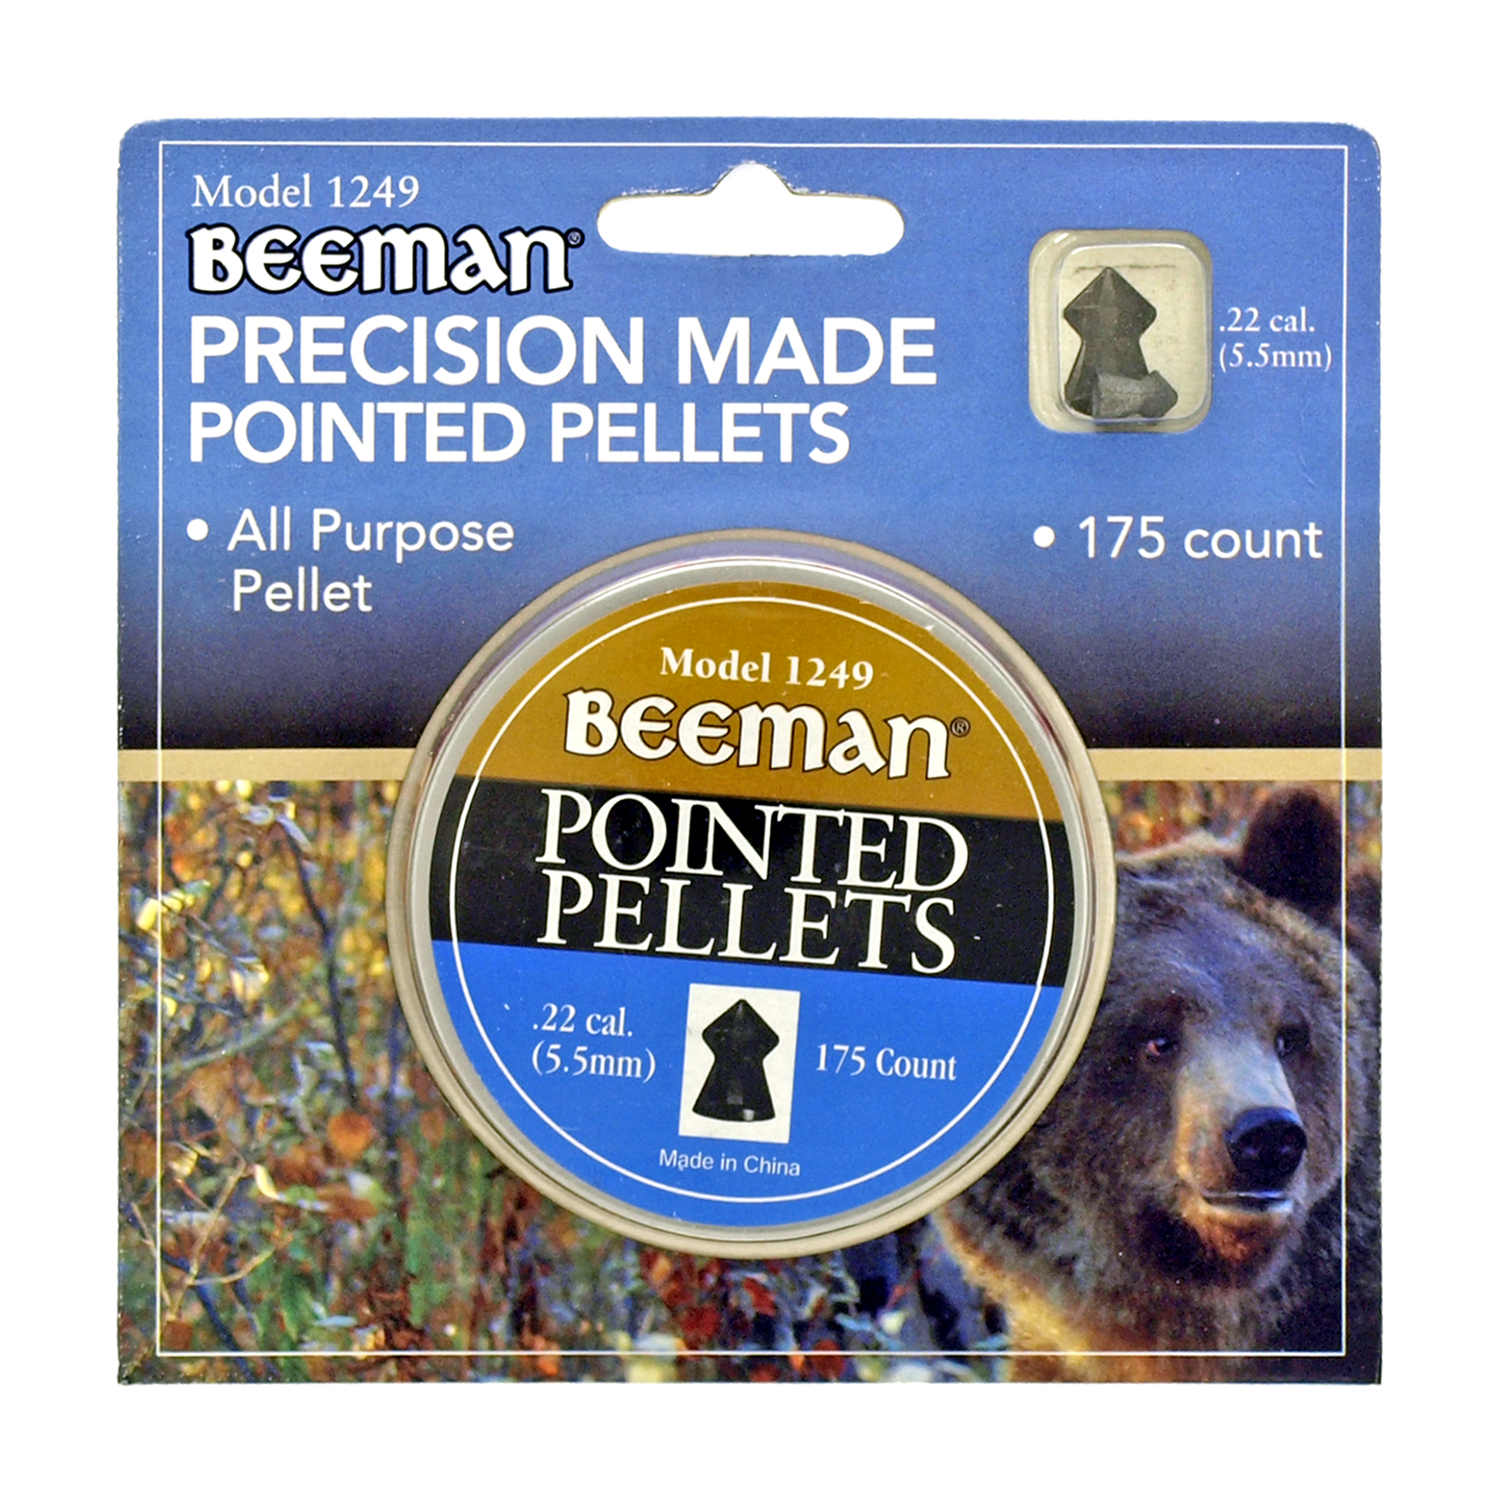 Beeman Precision Made Pointed Pellets - 175 Ct.